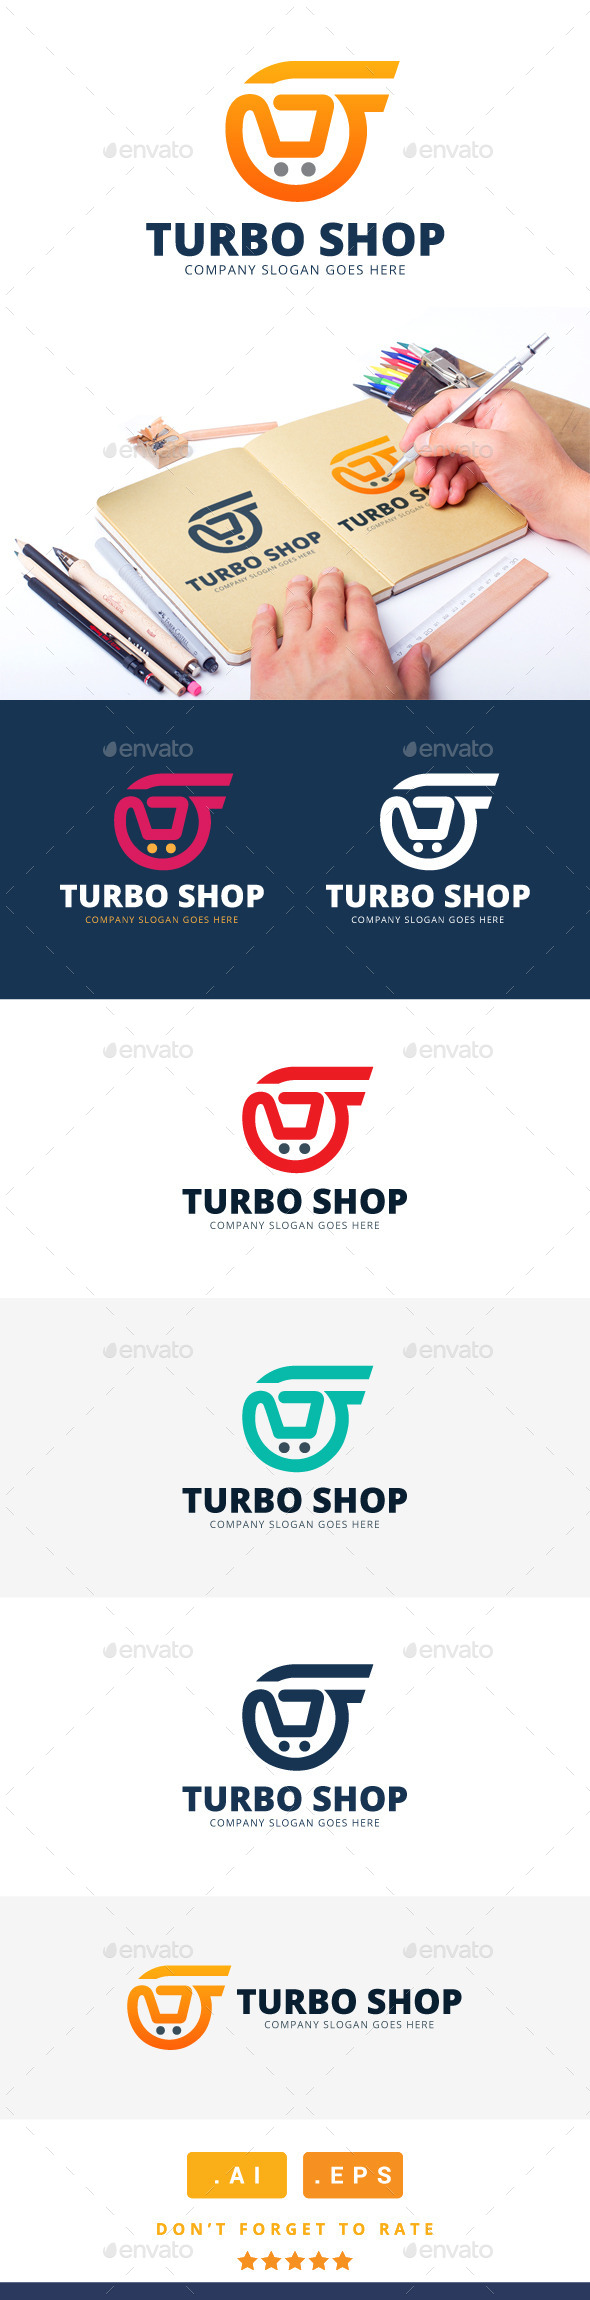 GraphicRiver Turbo Shop Logo 11304980